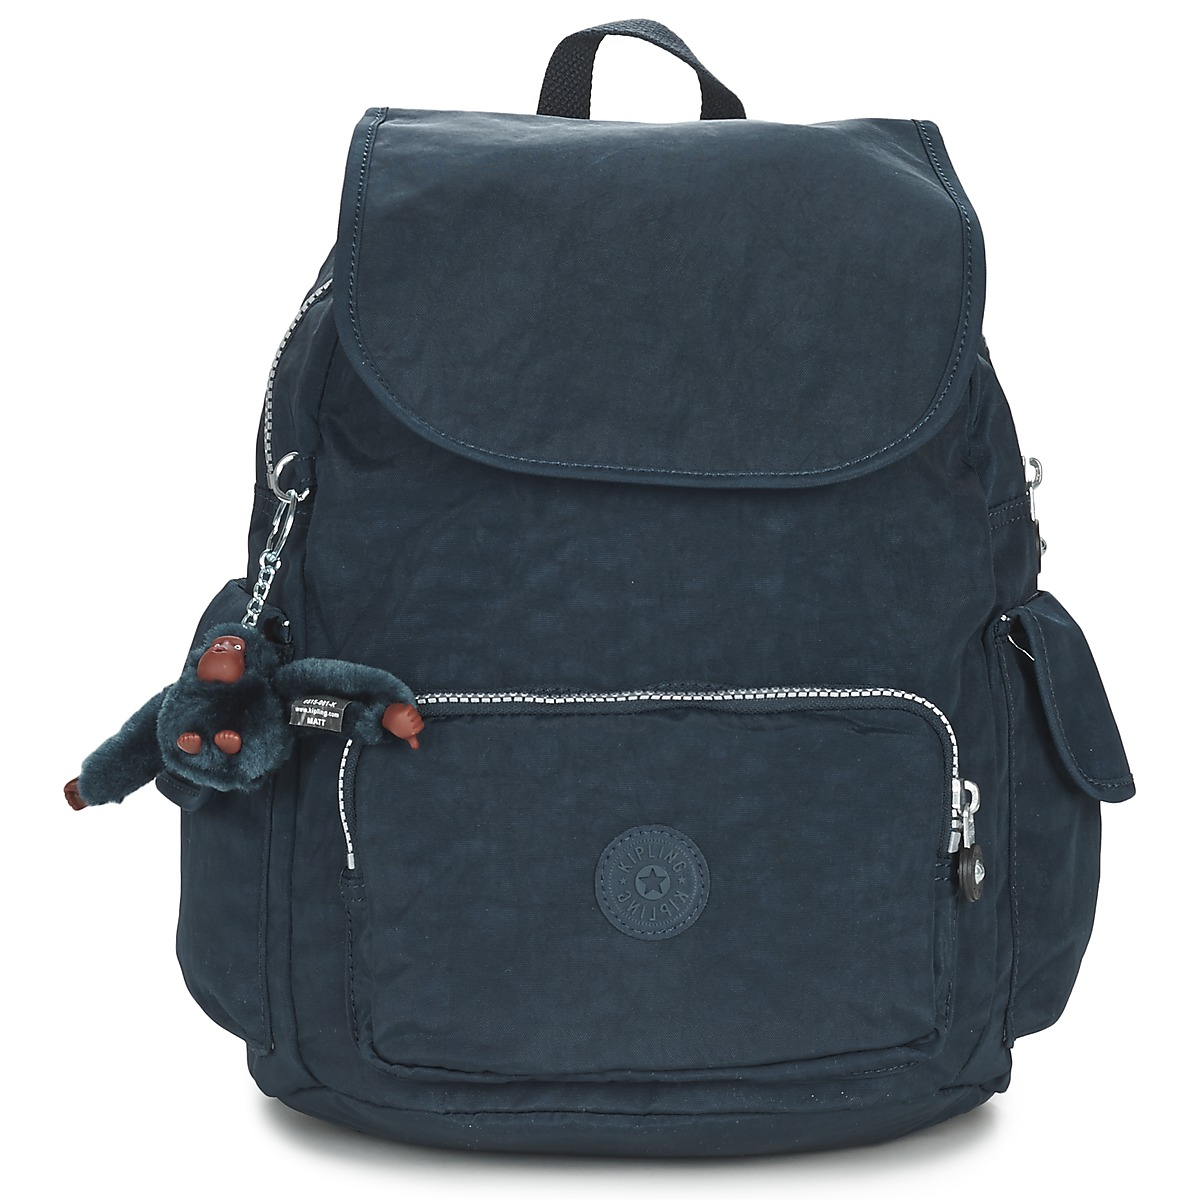 Kipling CITY PACK S True Blue pas cher, Sac à Dos Spartoo